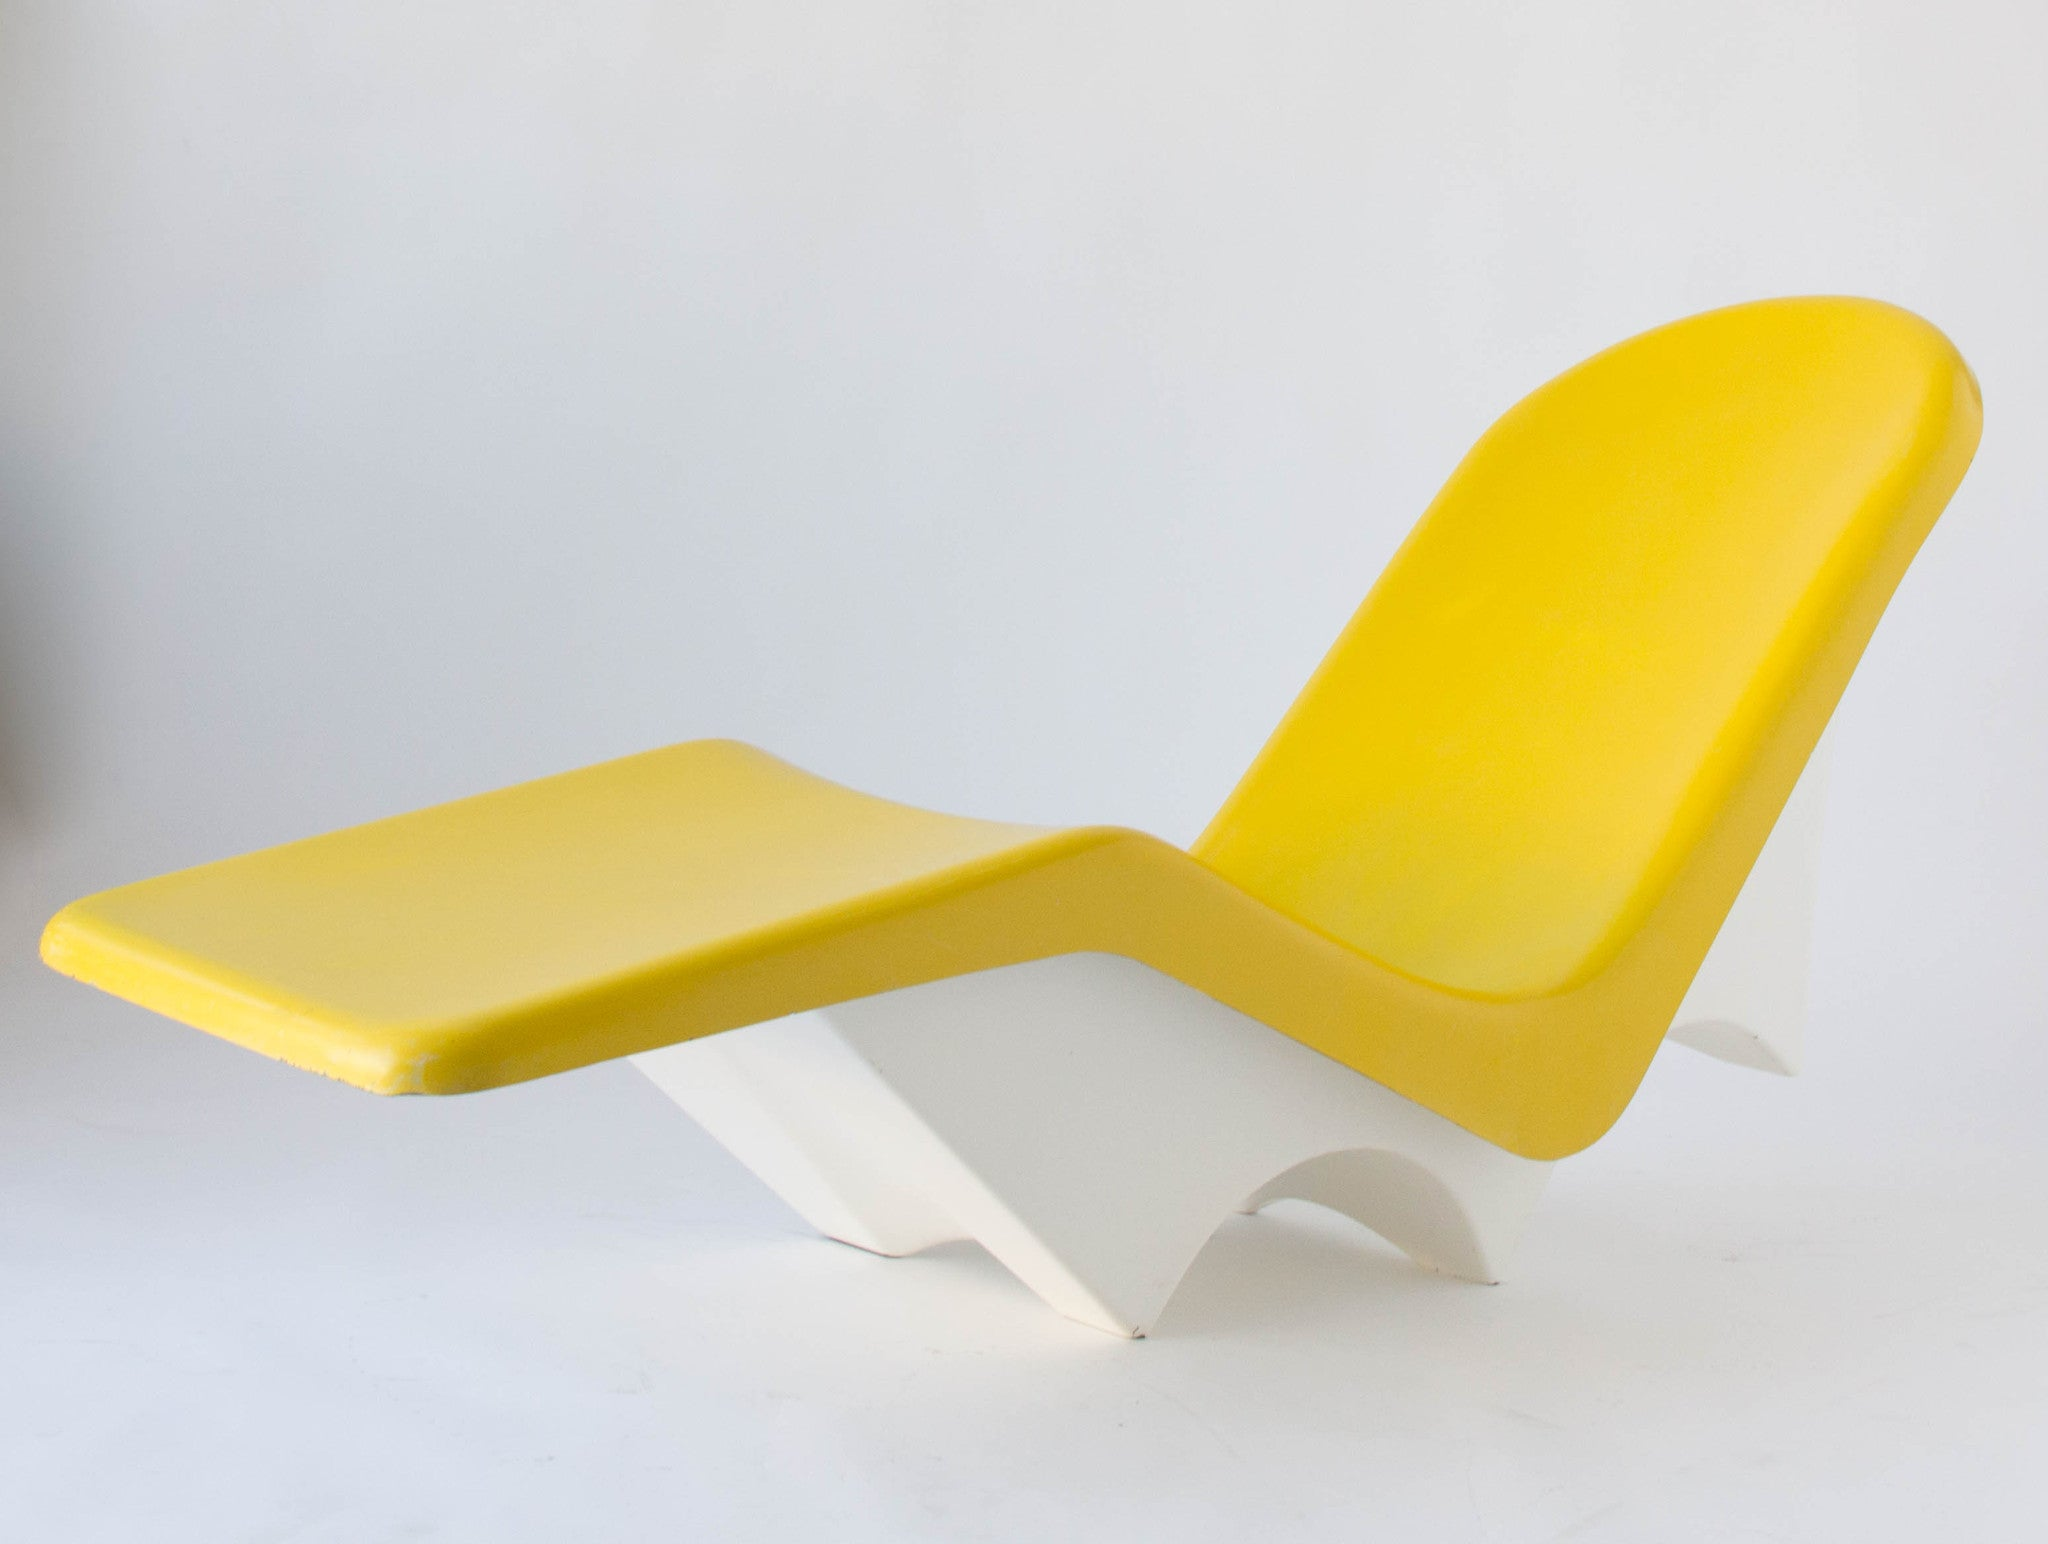 Pair of California Made Fiberglass Patio or Poolside Lounge Chairs